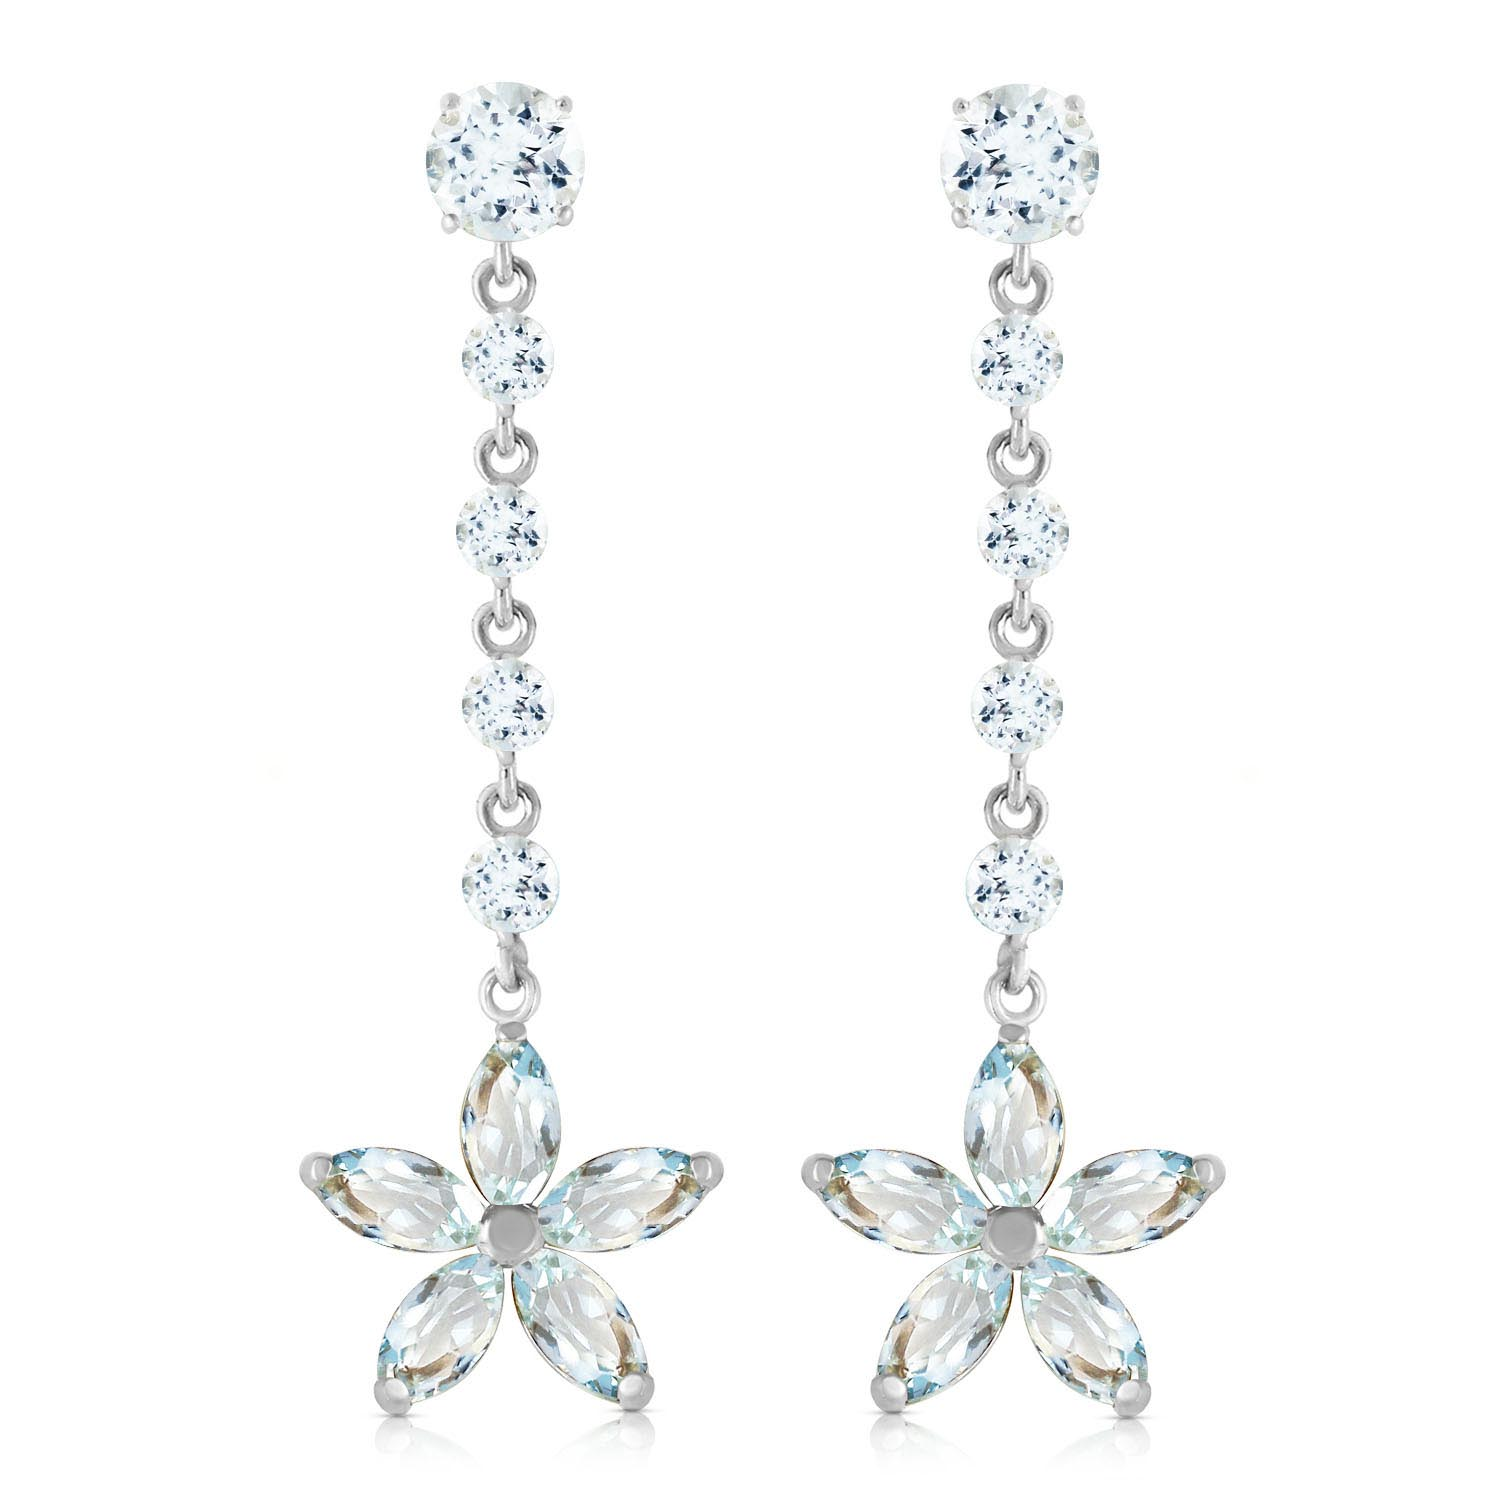 Aquamarine Daisy Chain Drop Earrings 4.8 ctw in 9ct White Gold